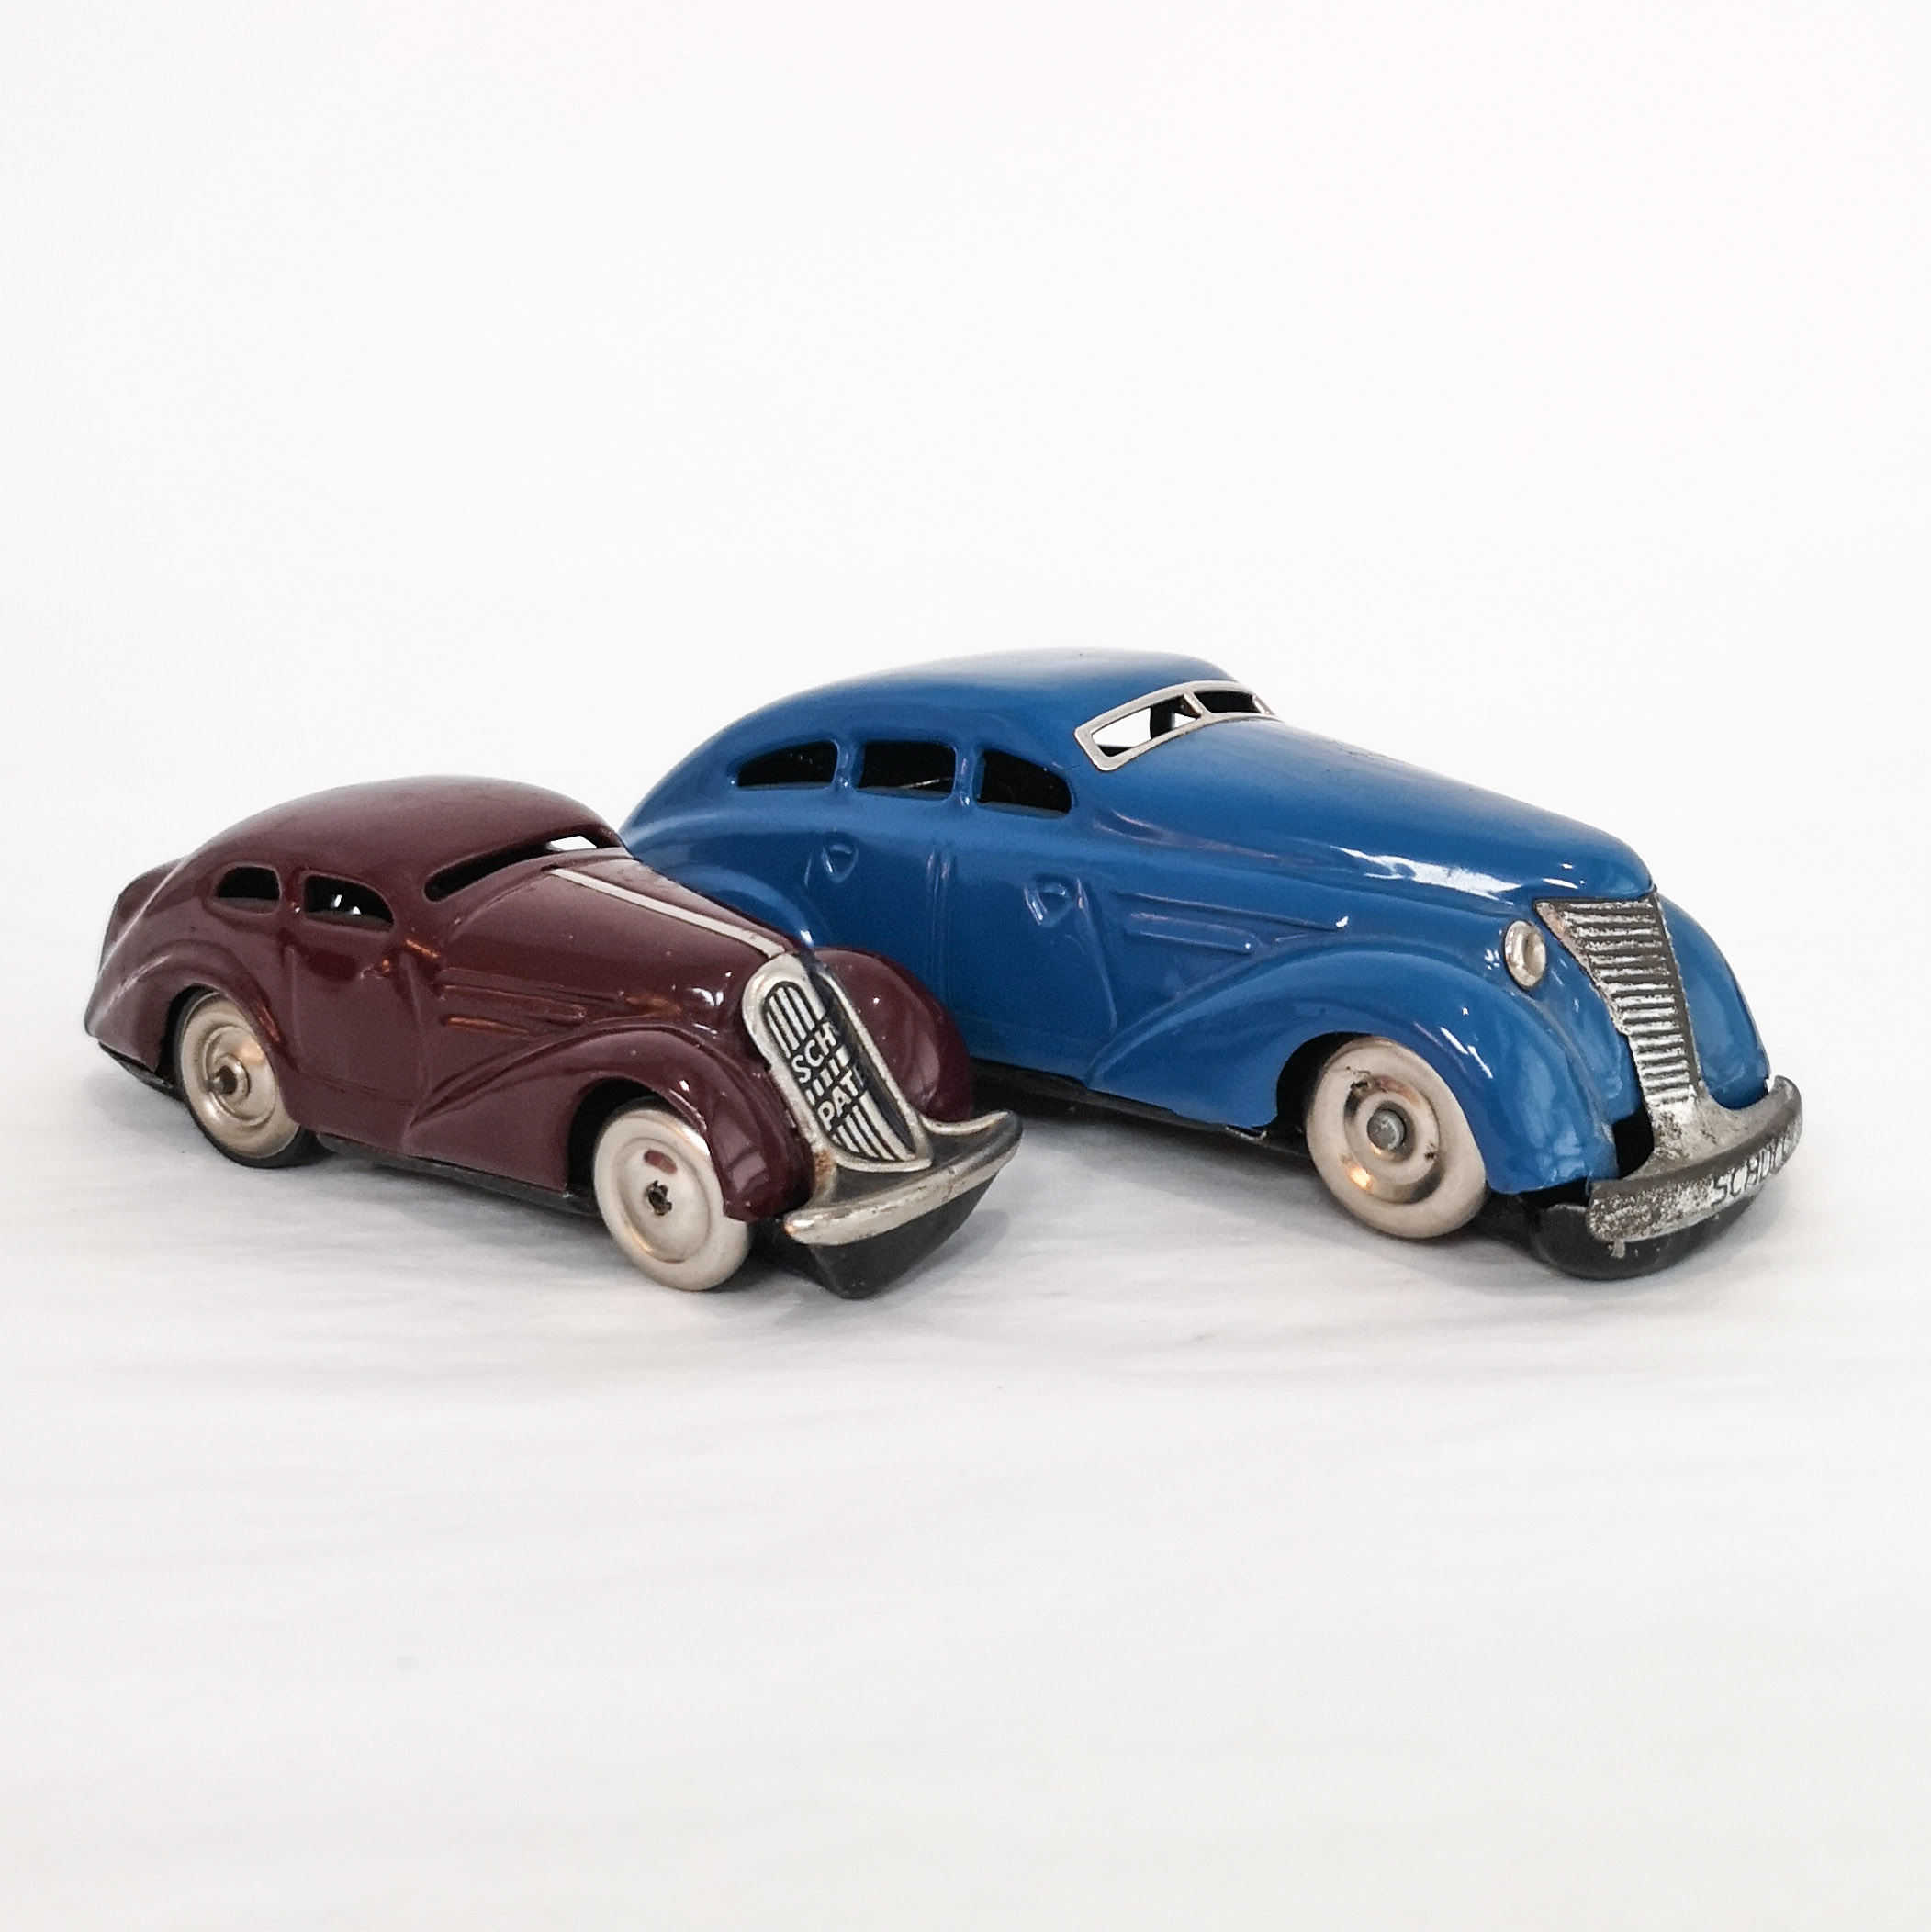 Plum Patent Auto with blue Limousine, both with Schuco's patented turn-back mechanism.